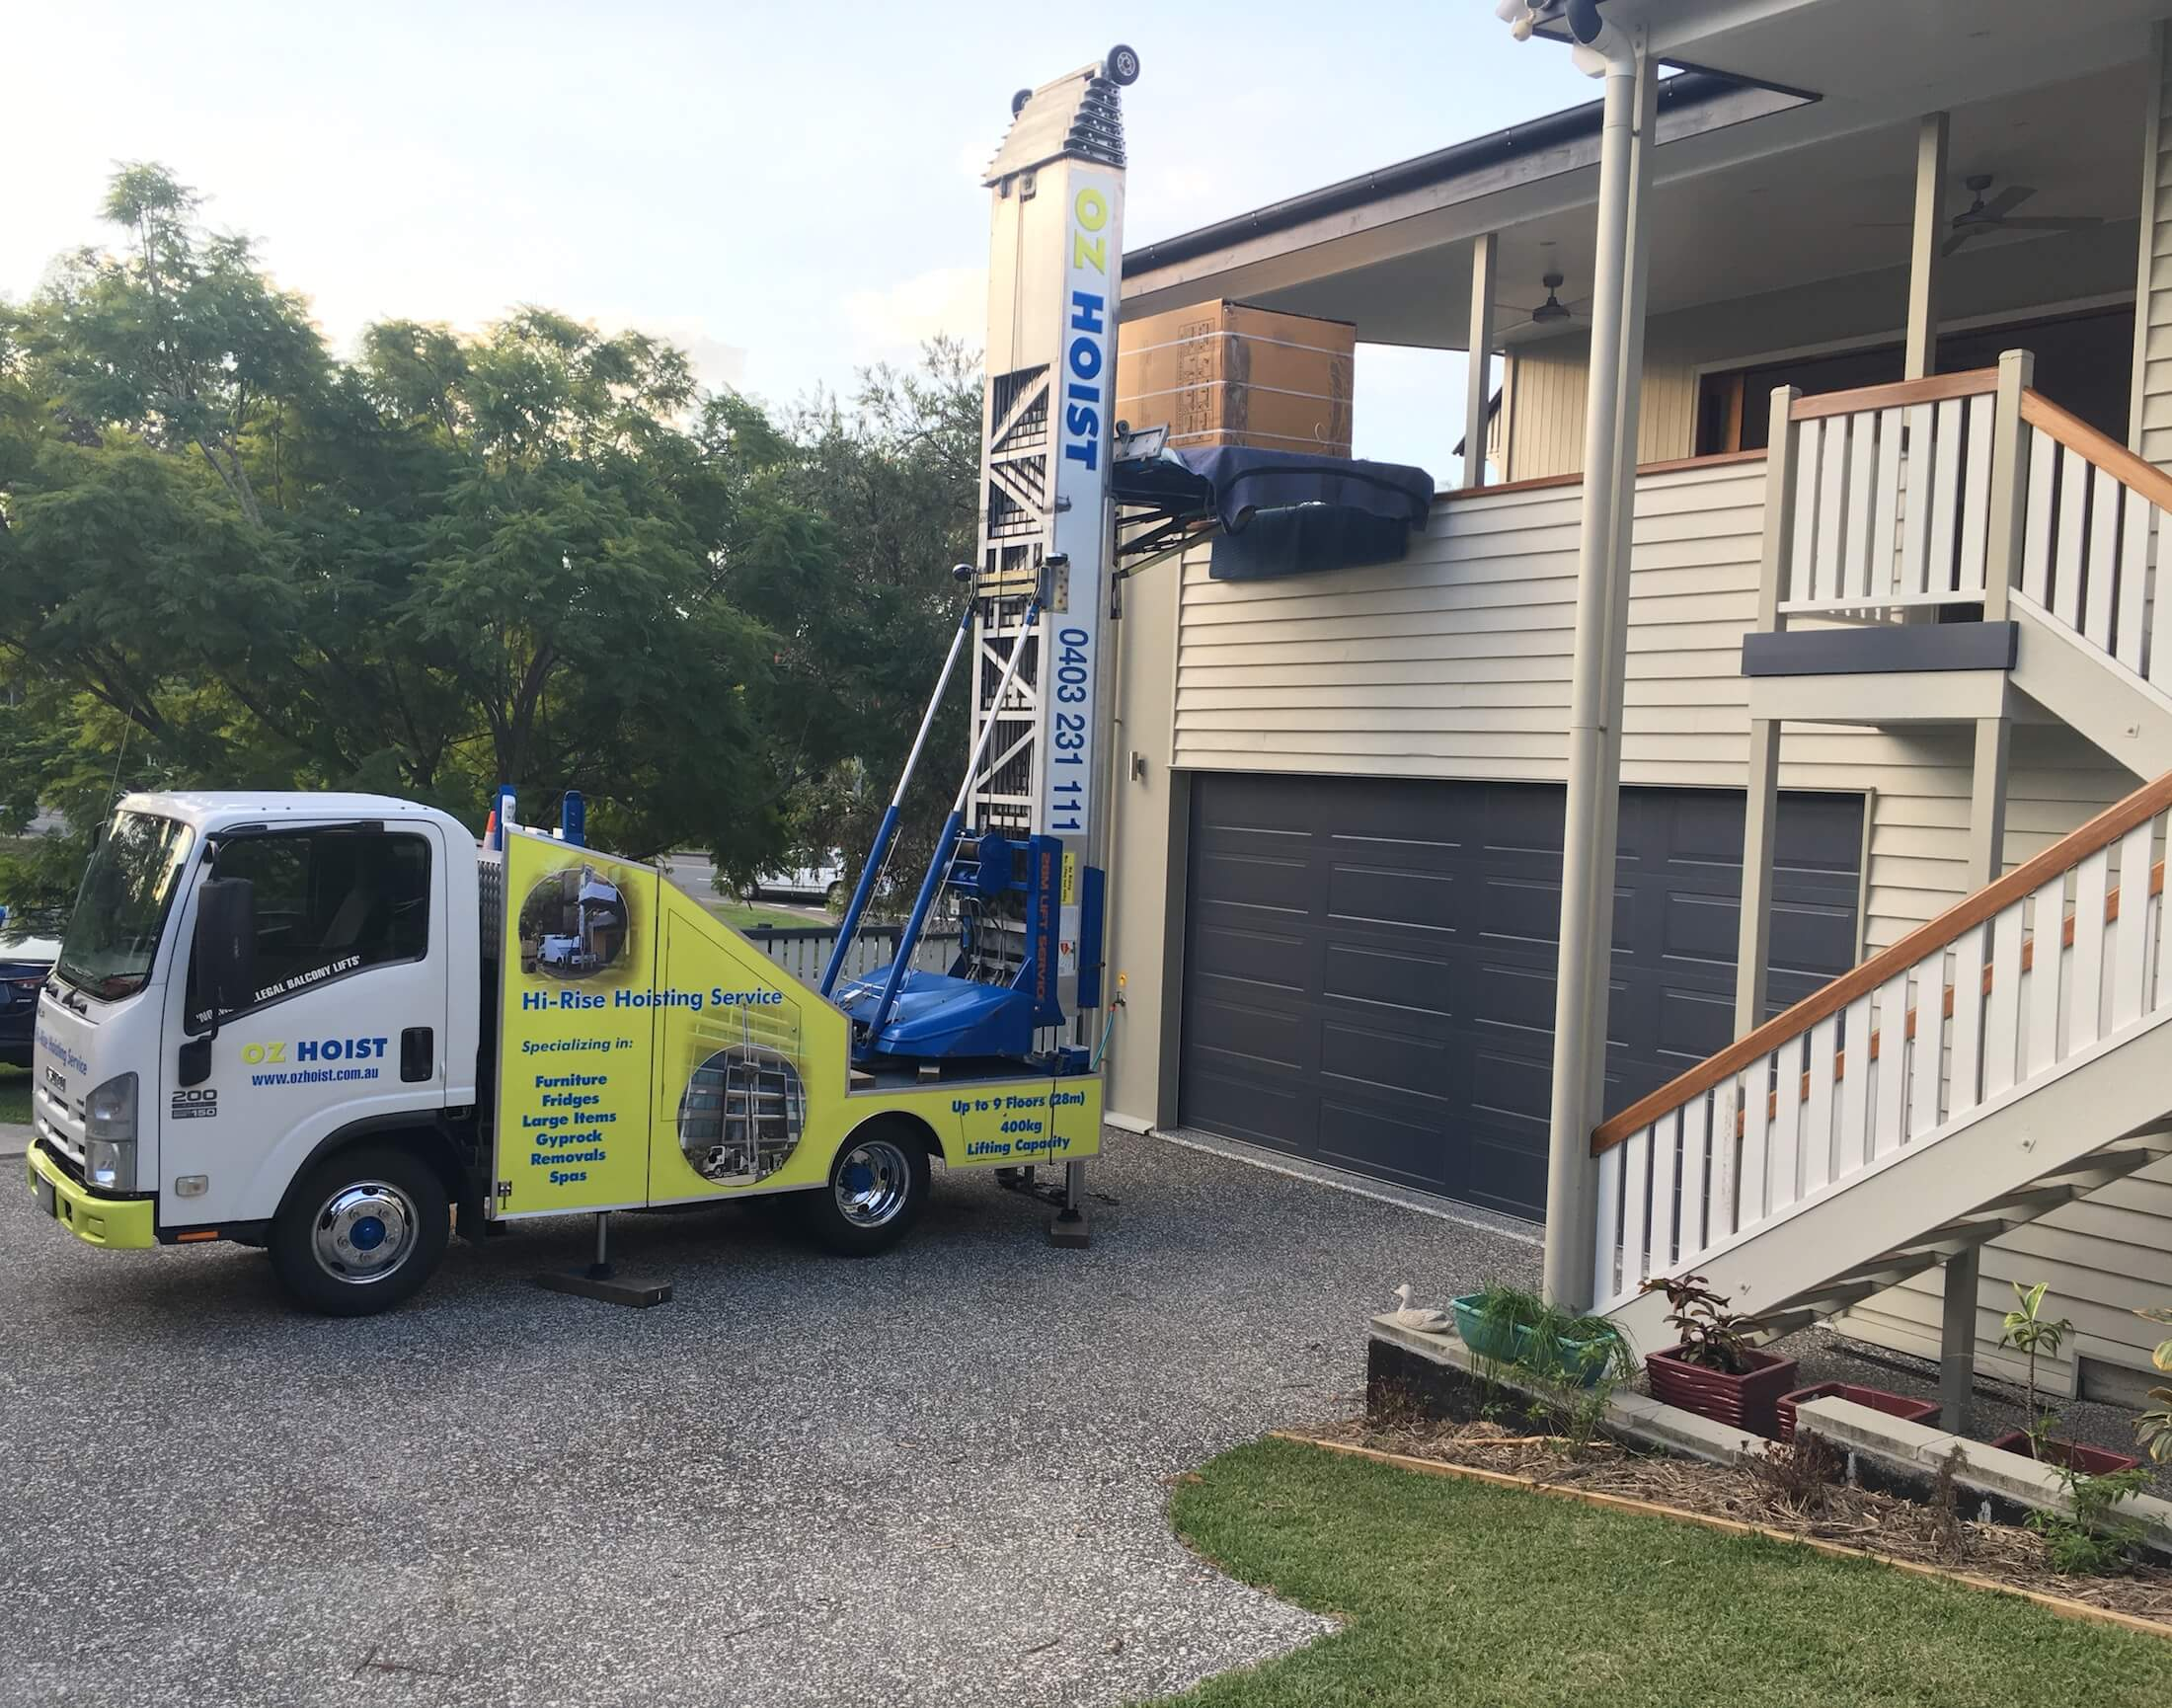 move_new_fridge_does_not_fit_up_stairs_over_balcony_lift_service_brisbane_sunshine_coast_gold_coast